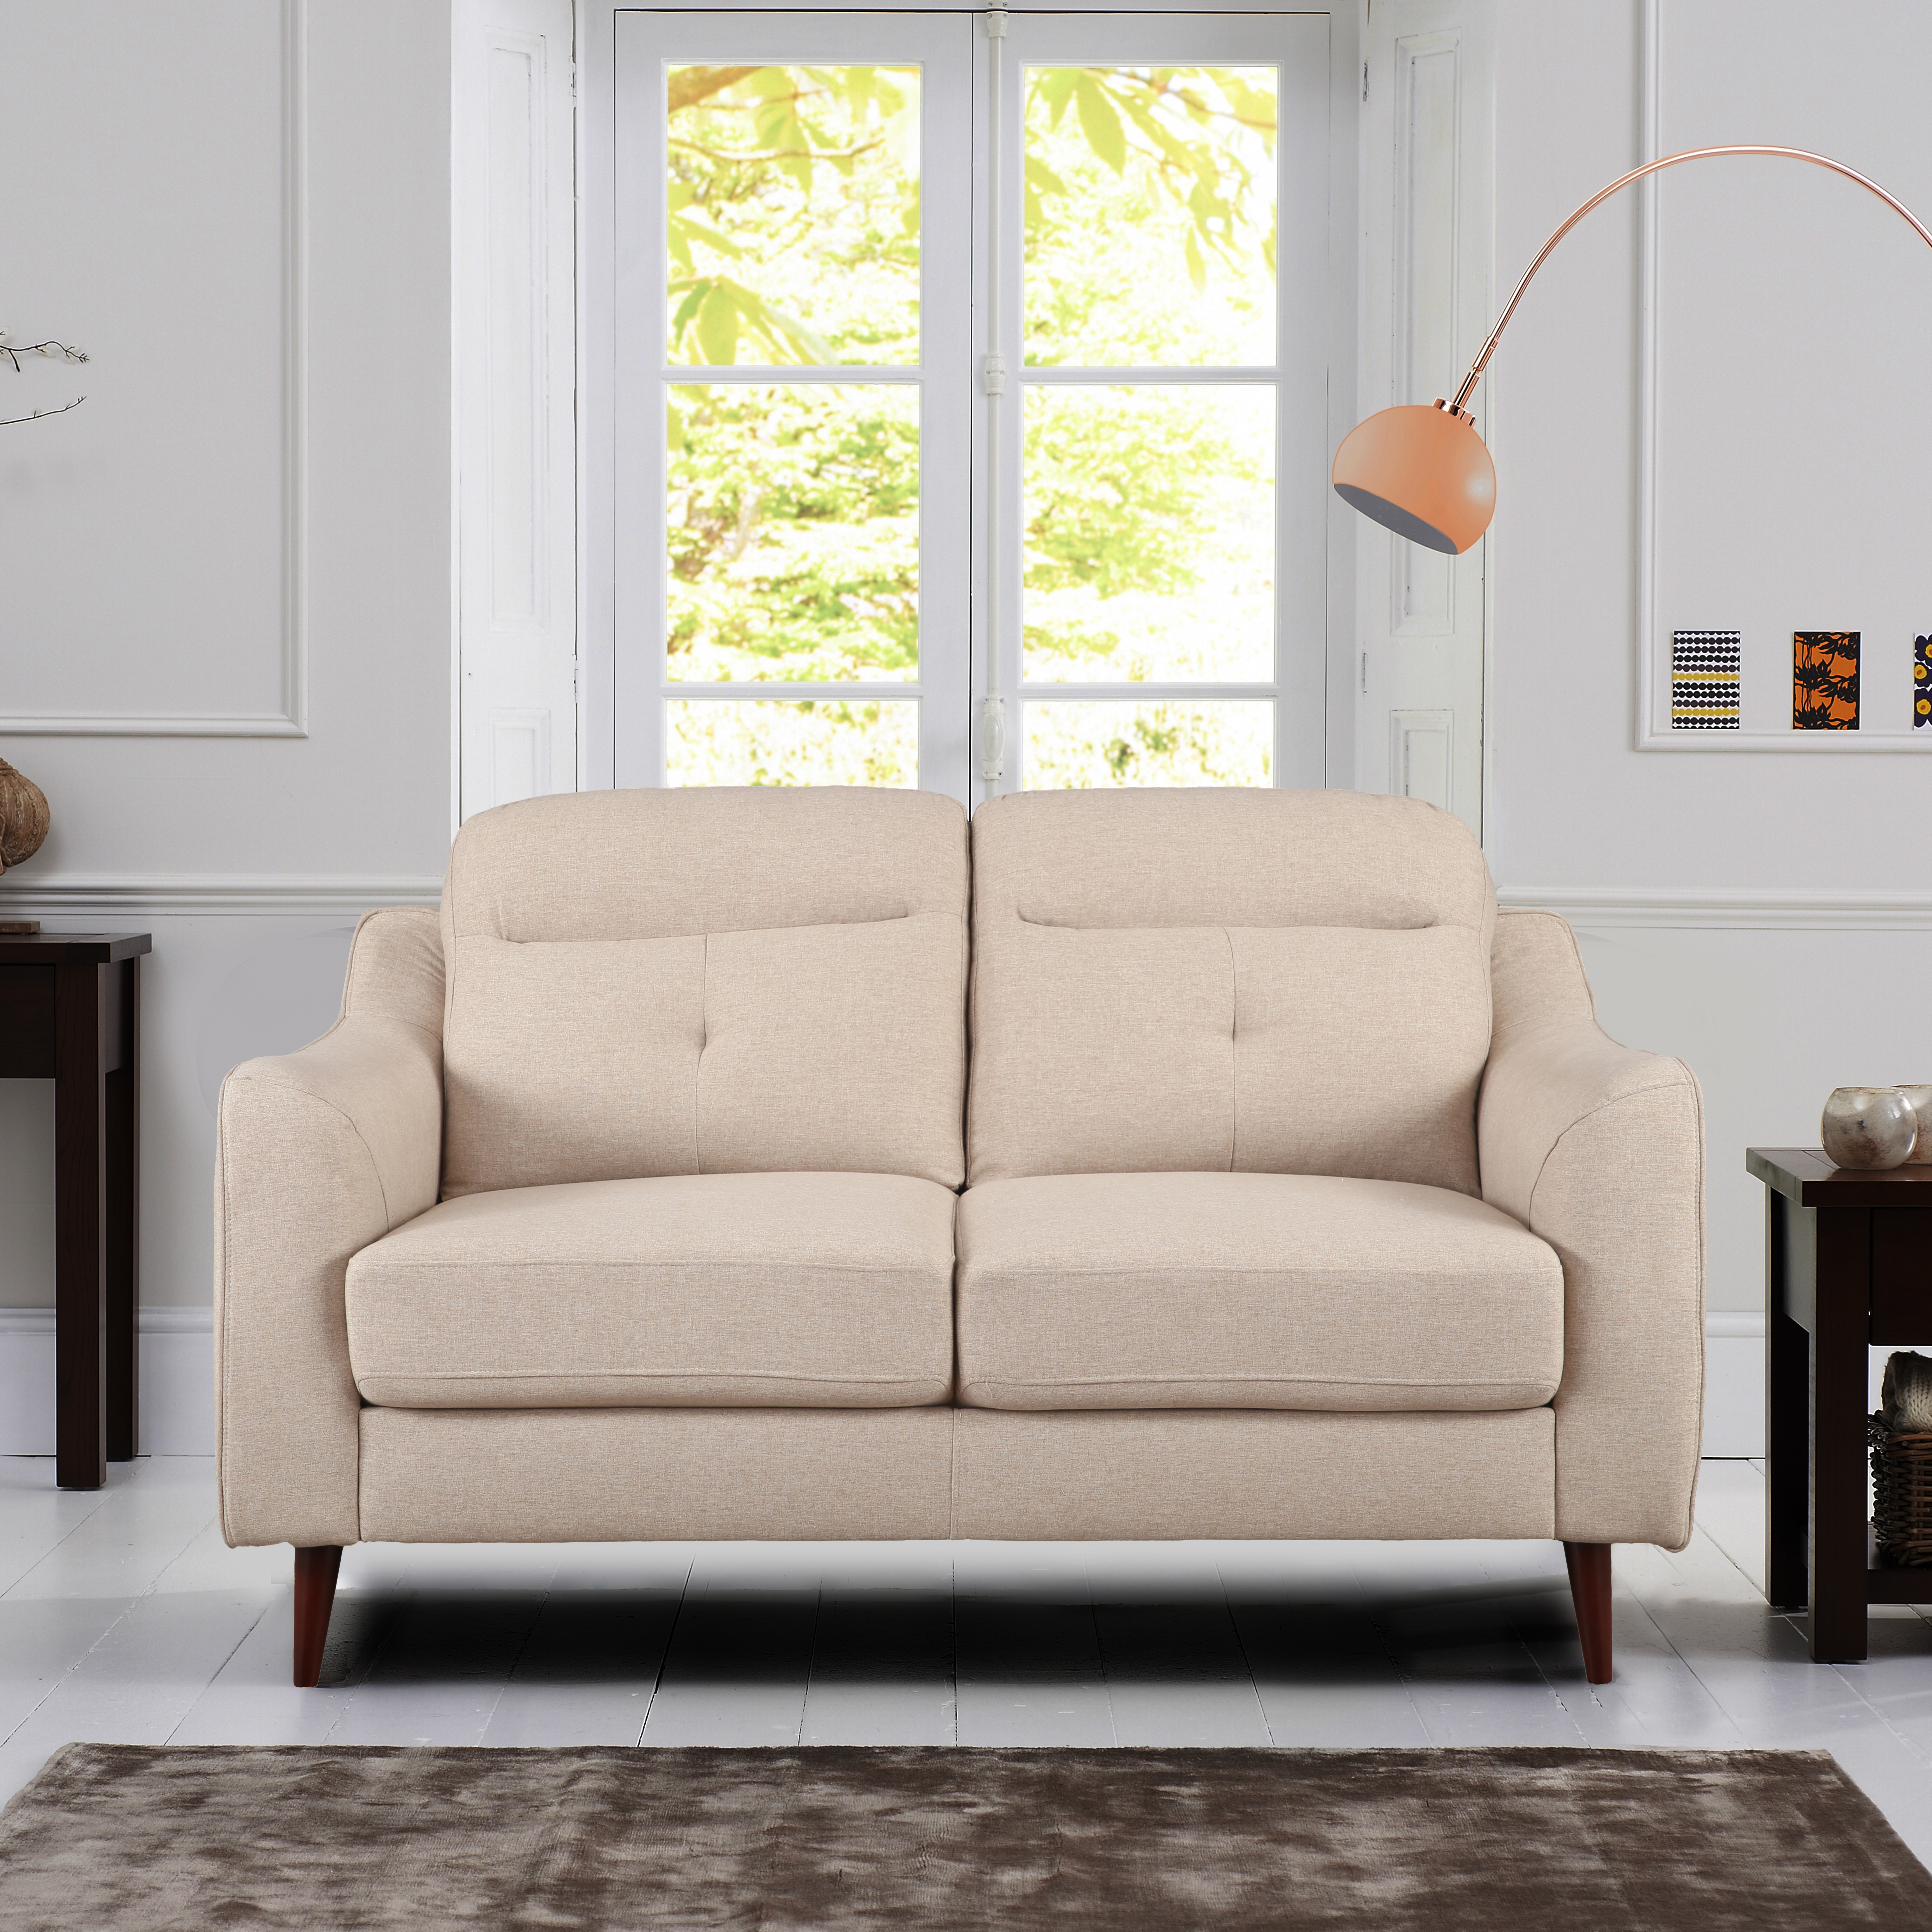 Sheldon Fabric Two Seater Sofa in Beige Colour by HomeTown